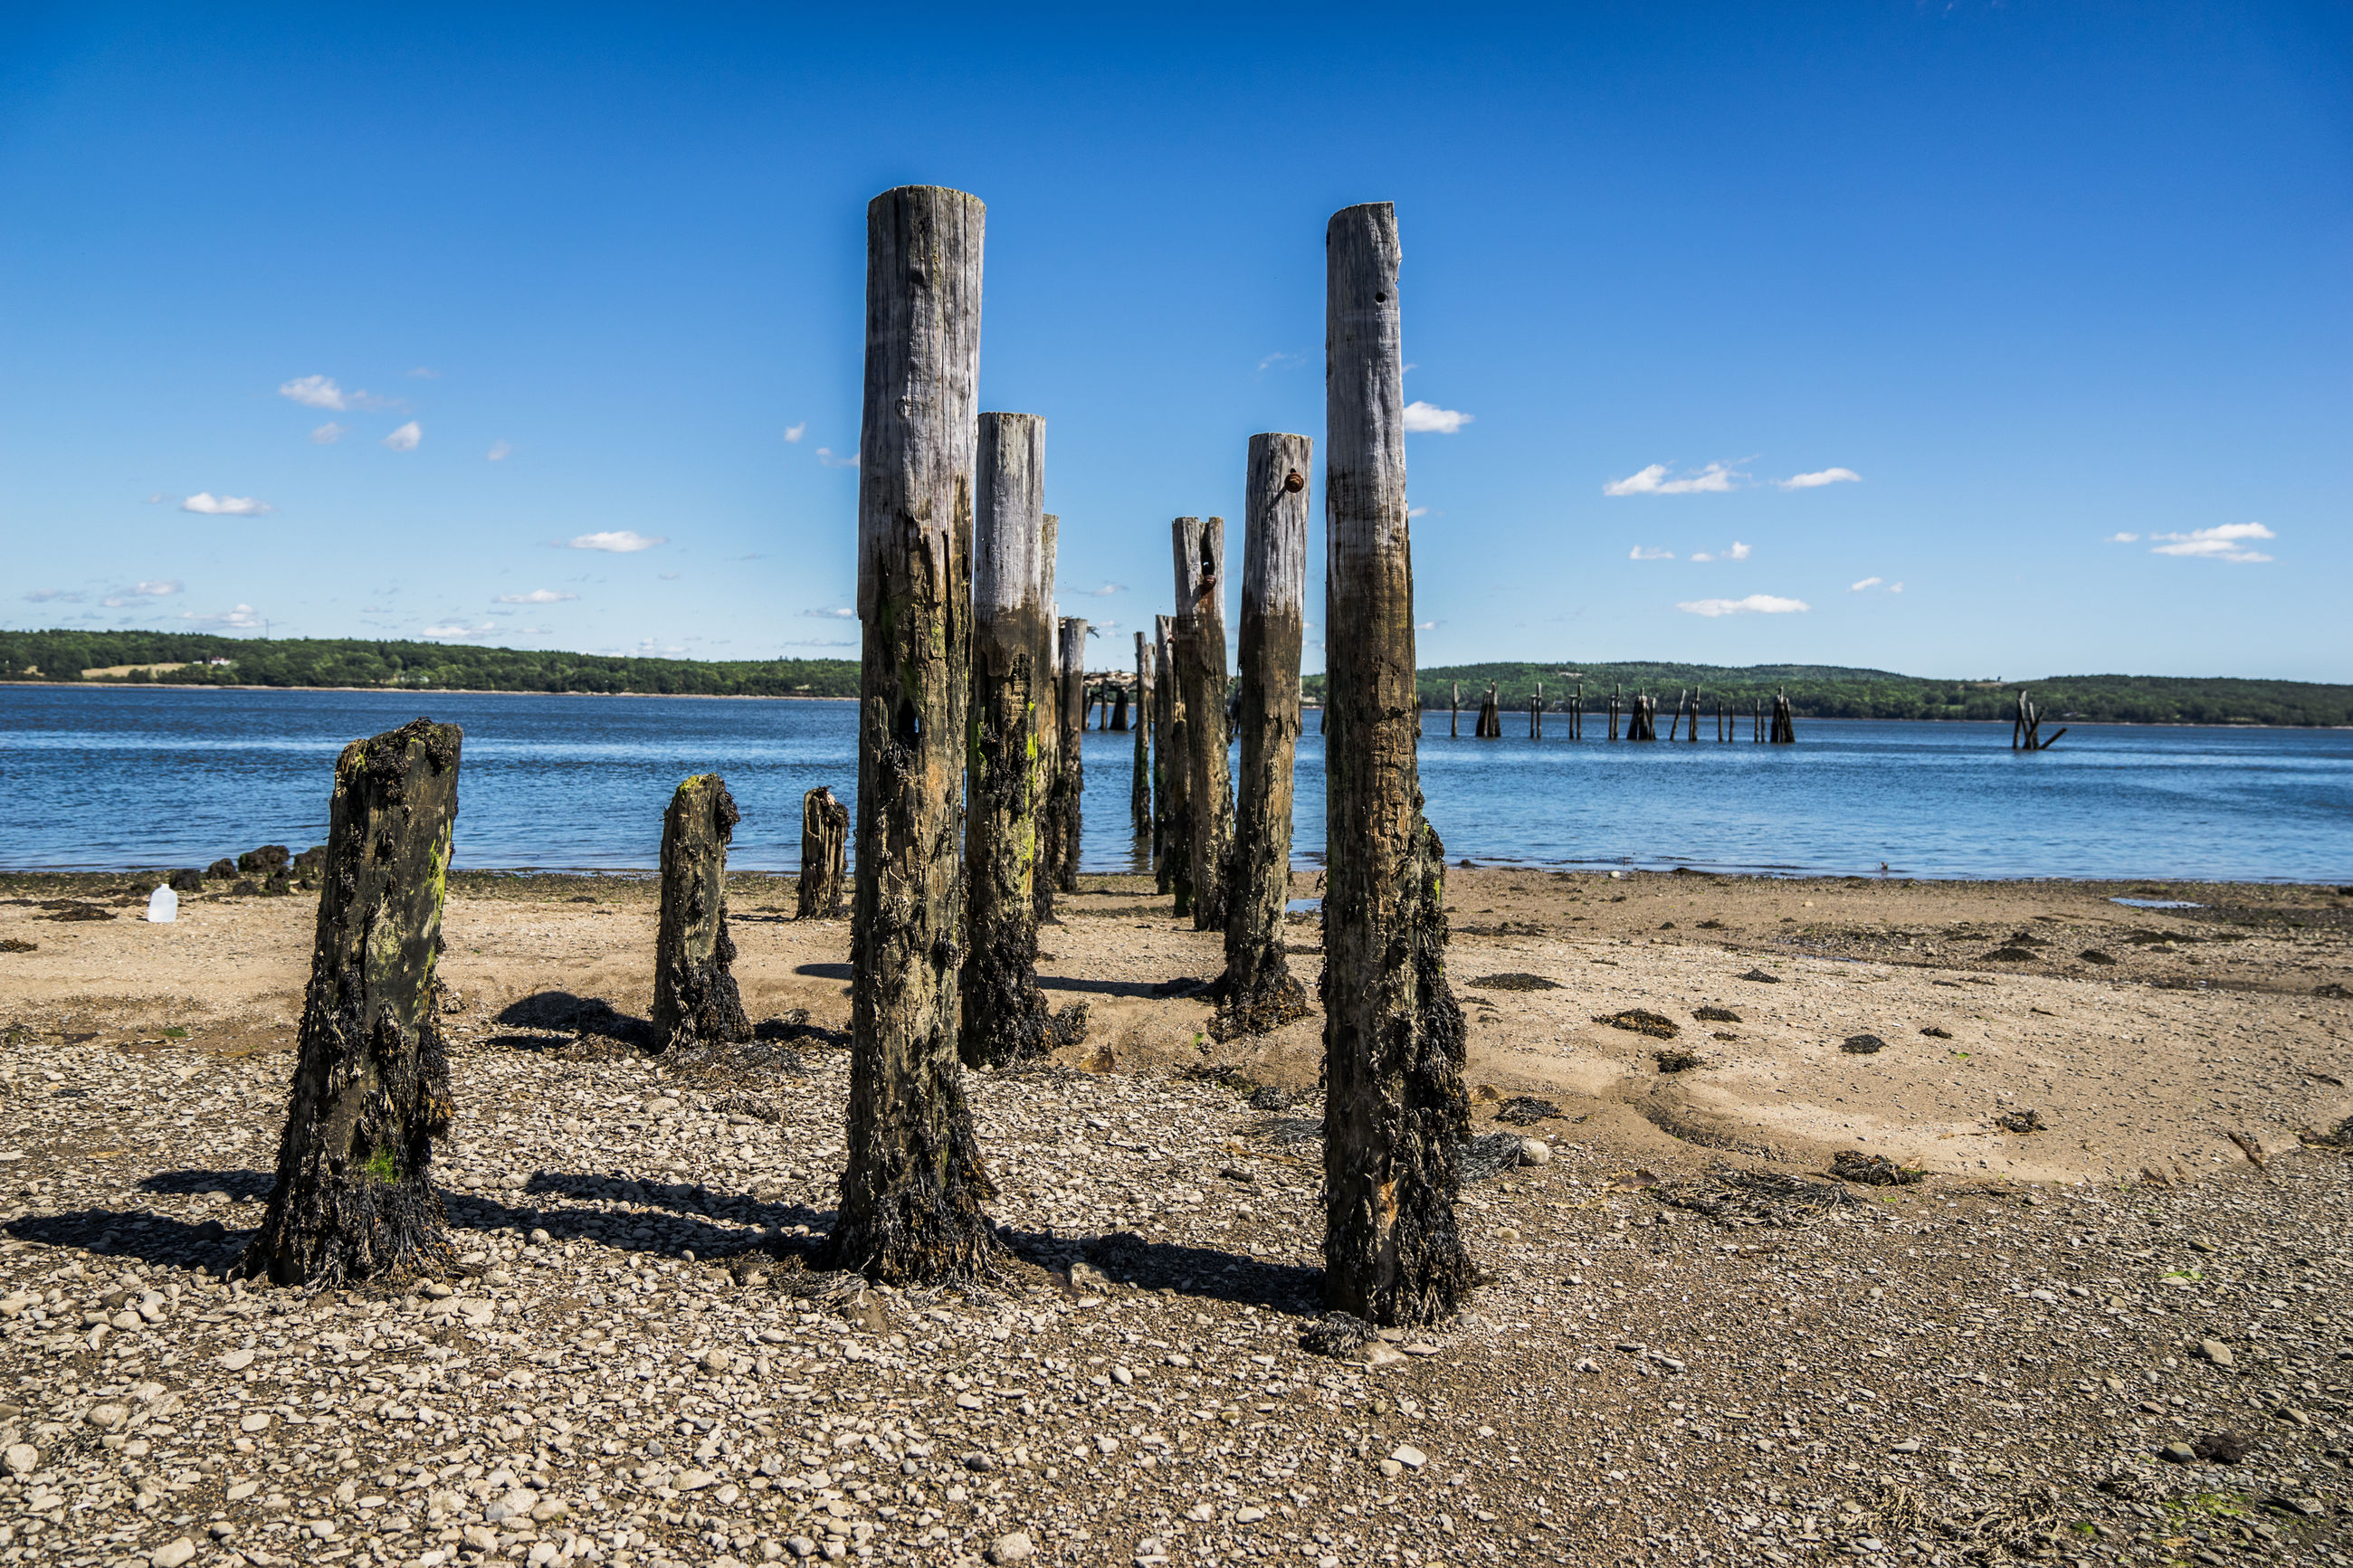 Wooden posts at beach